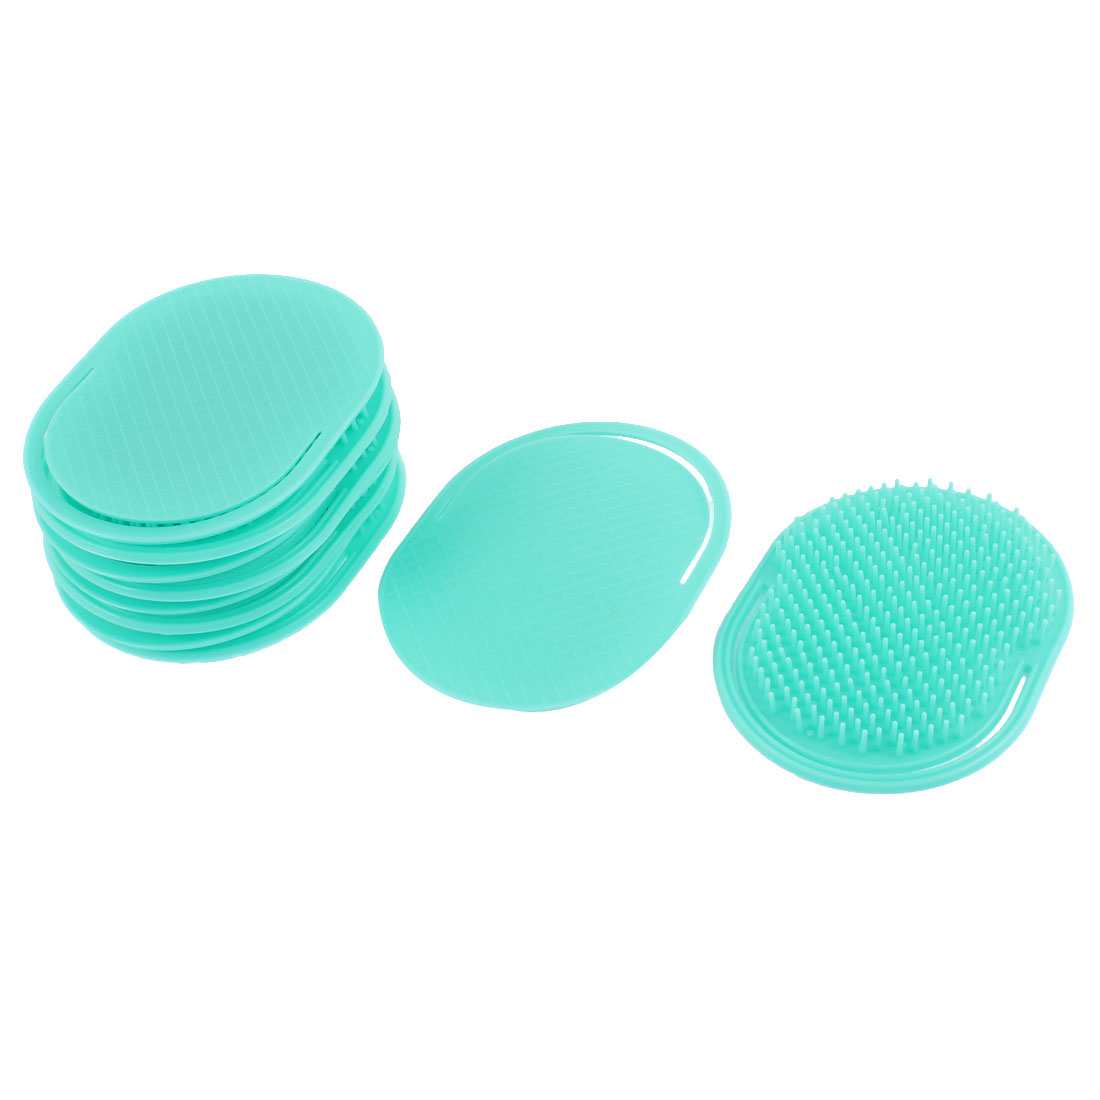 Oval Shaped Palm Comb Scalp Massage Brush Green 10Pcs